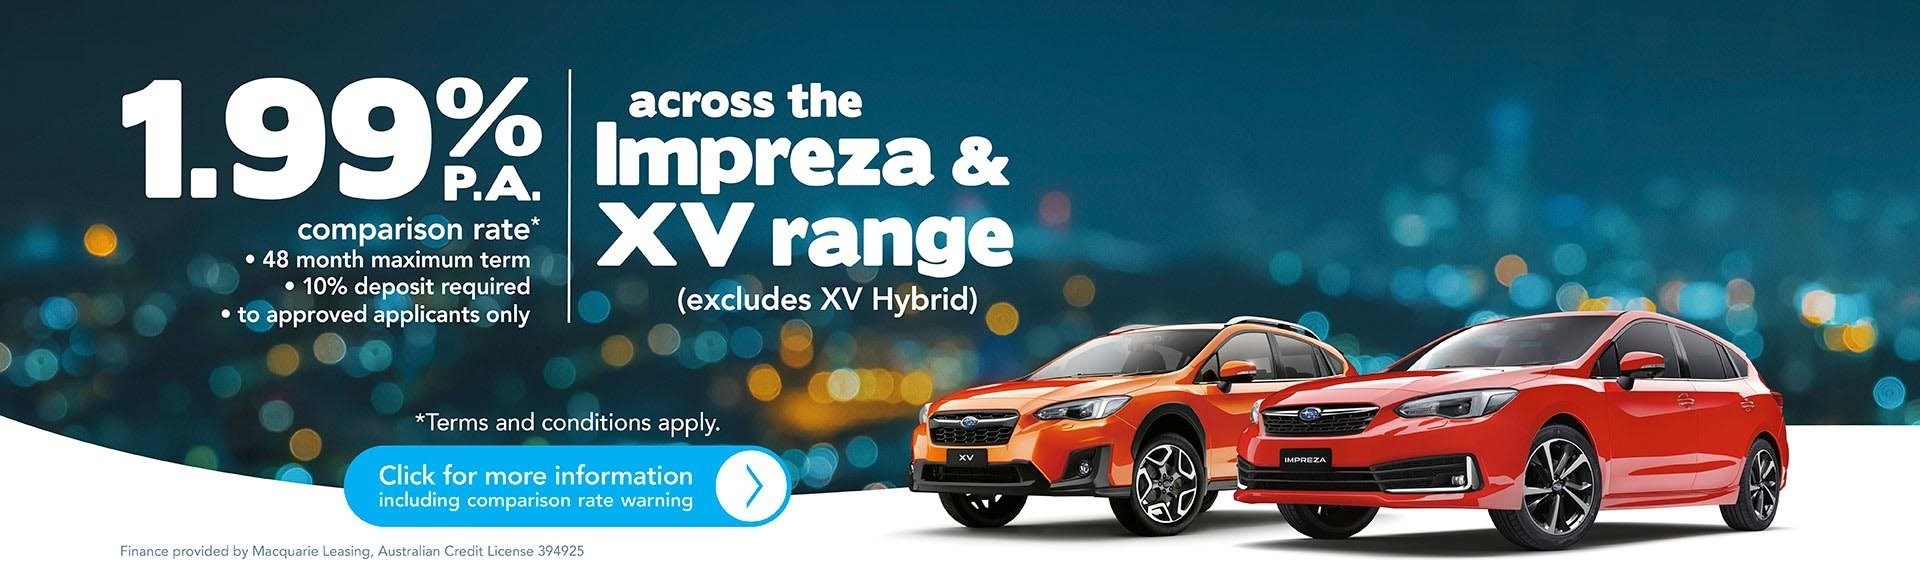 Subaru Penrith - Impreza & XV Range Finance Offer